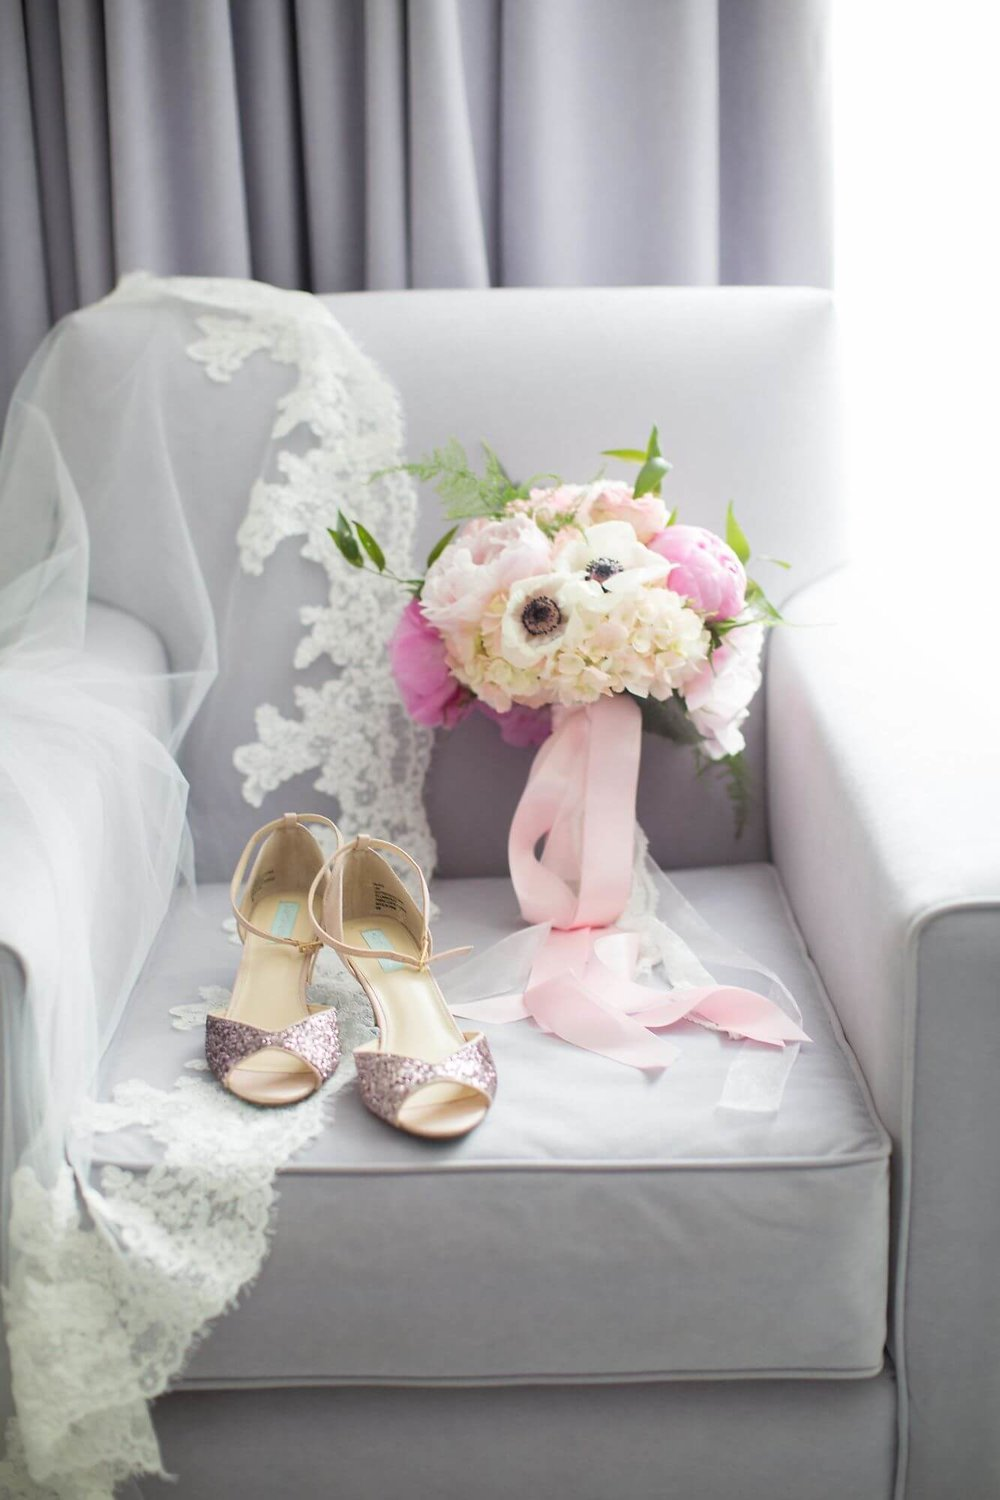 Artistic photo of bride's white and blush pink wedding bouquet on grey armchair with lacy veil and glittery pink heels - Niagara wedding - Historia Wedding and Event Planning